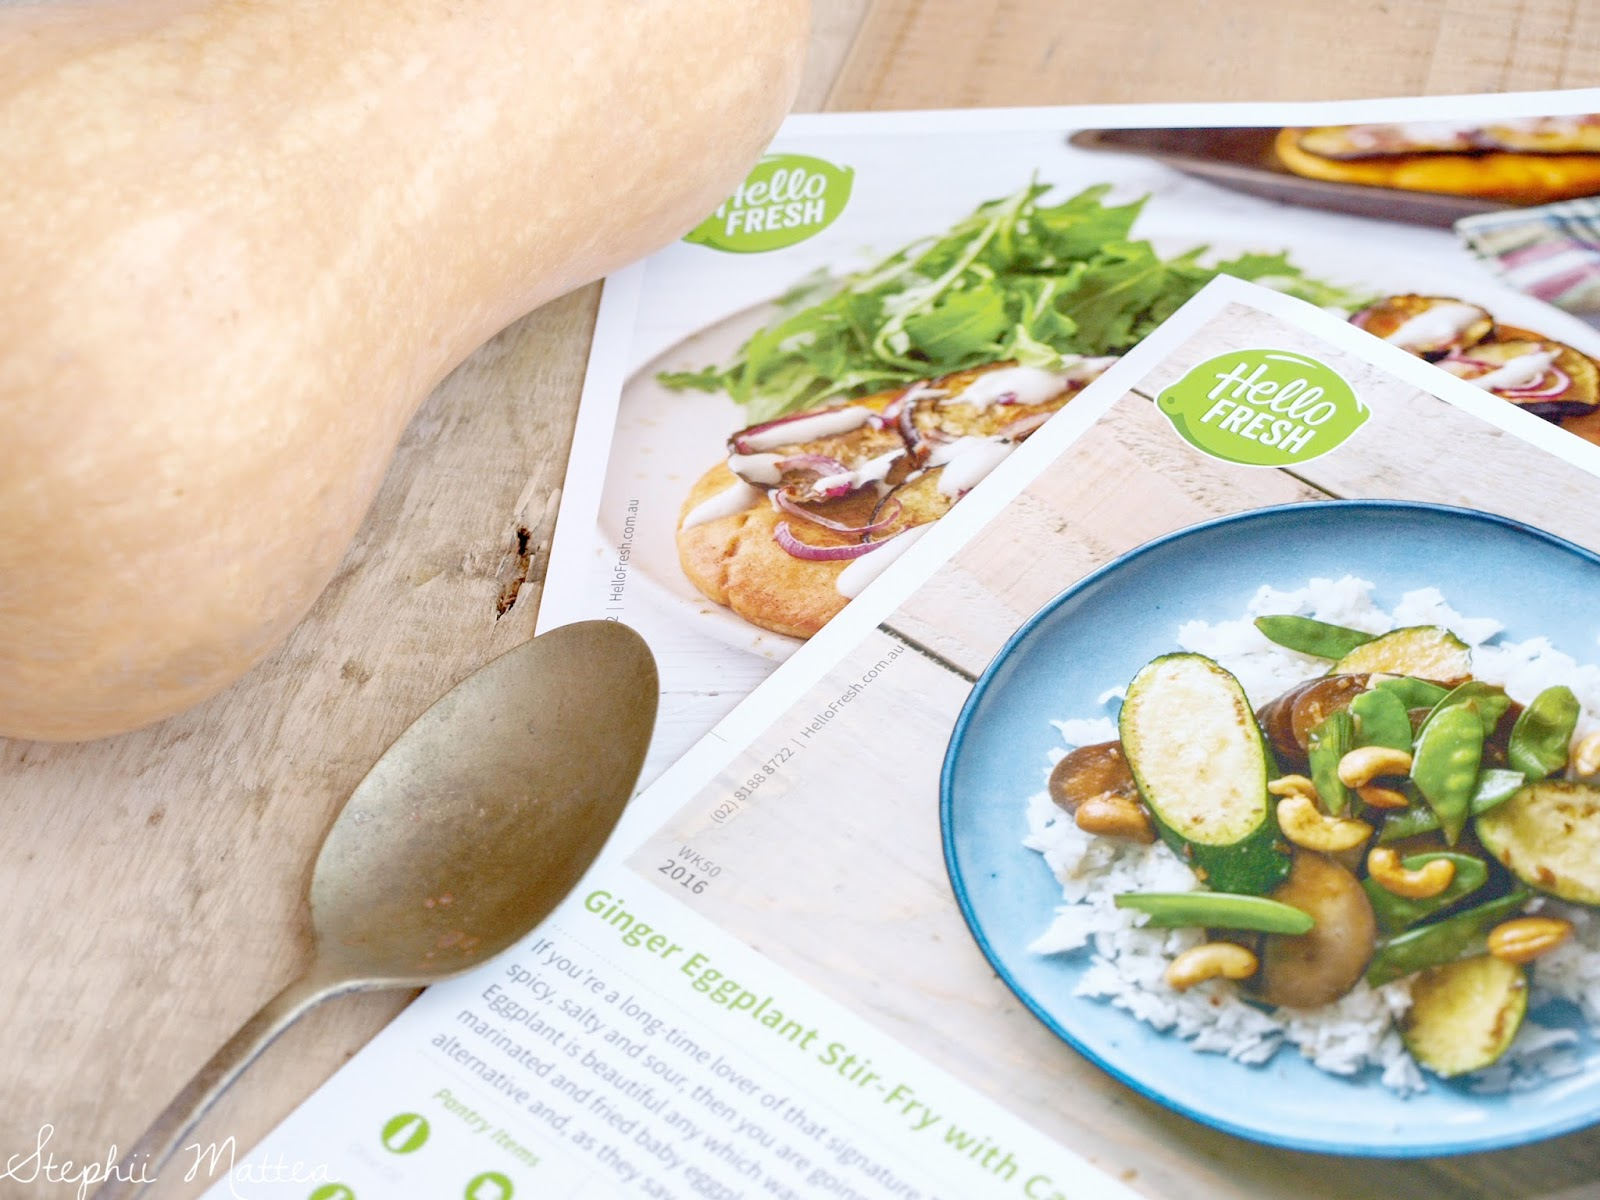 Meal Kit Delivery Service  Hellofresh Warranty Check